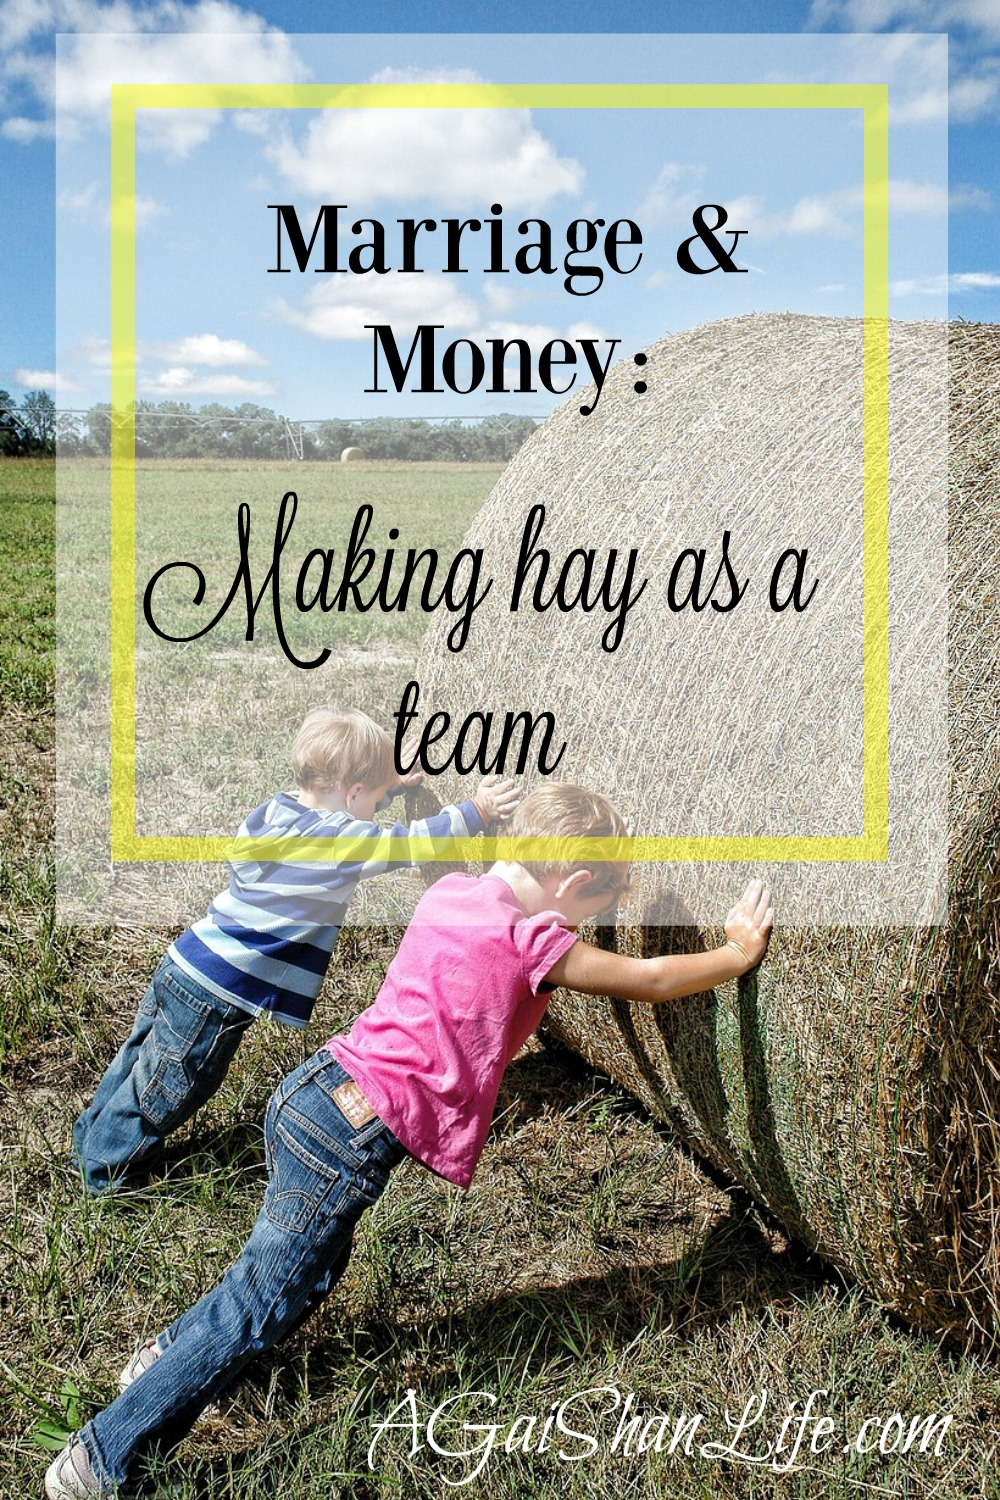 How PiC and I build up our wealth: together, as a team